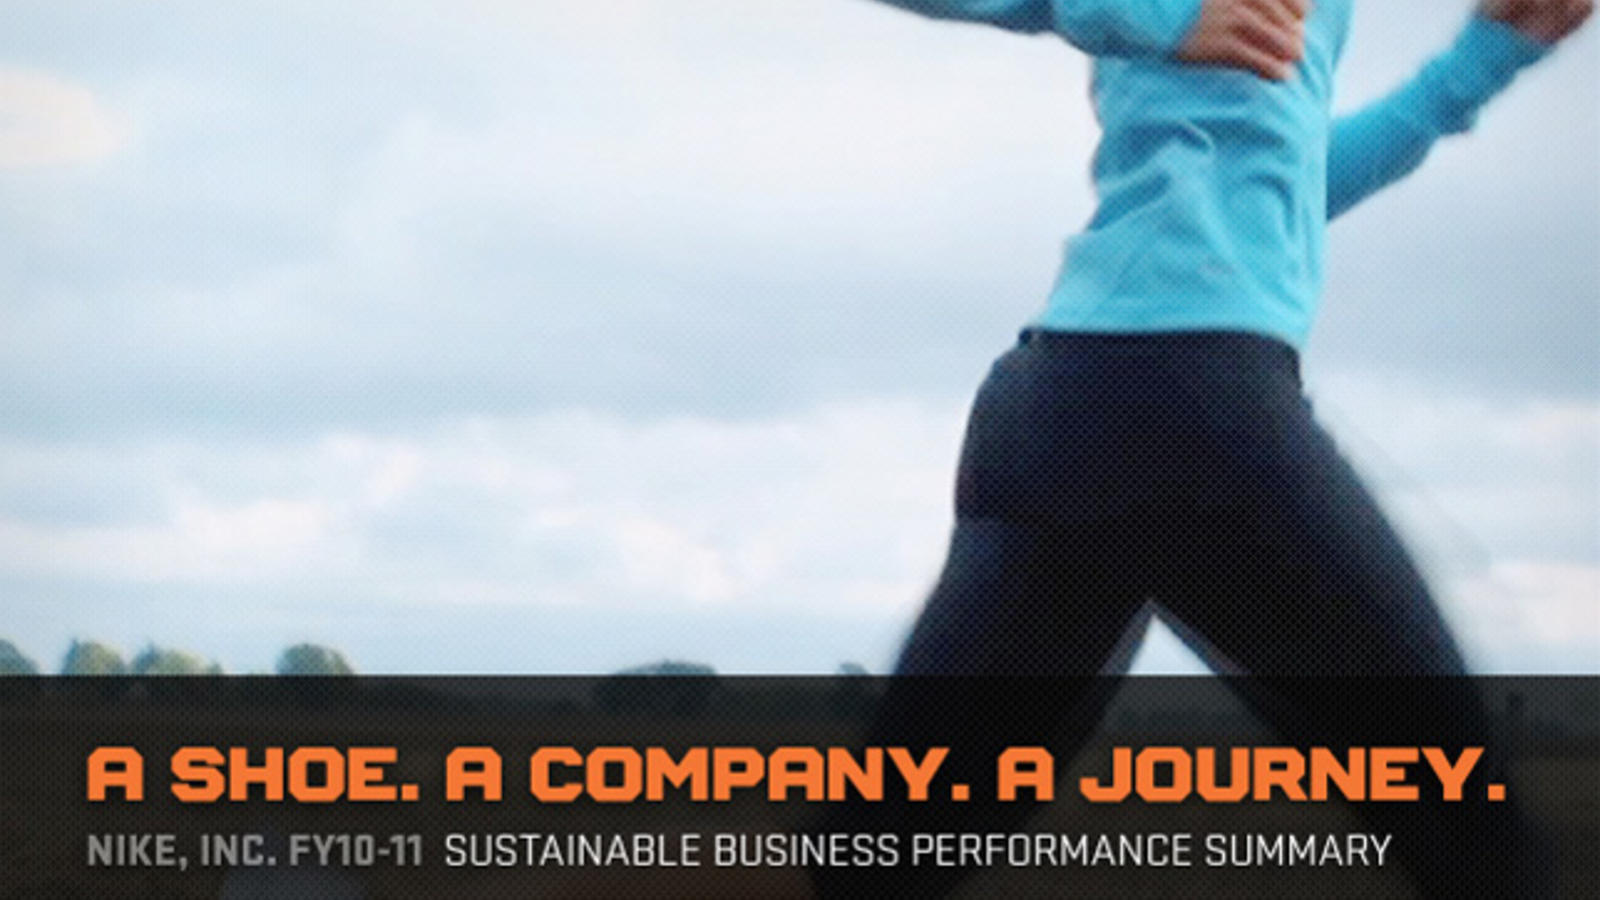 NIKE, Inc. Launches Sustainable Business Performance Summary